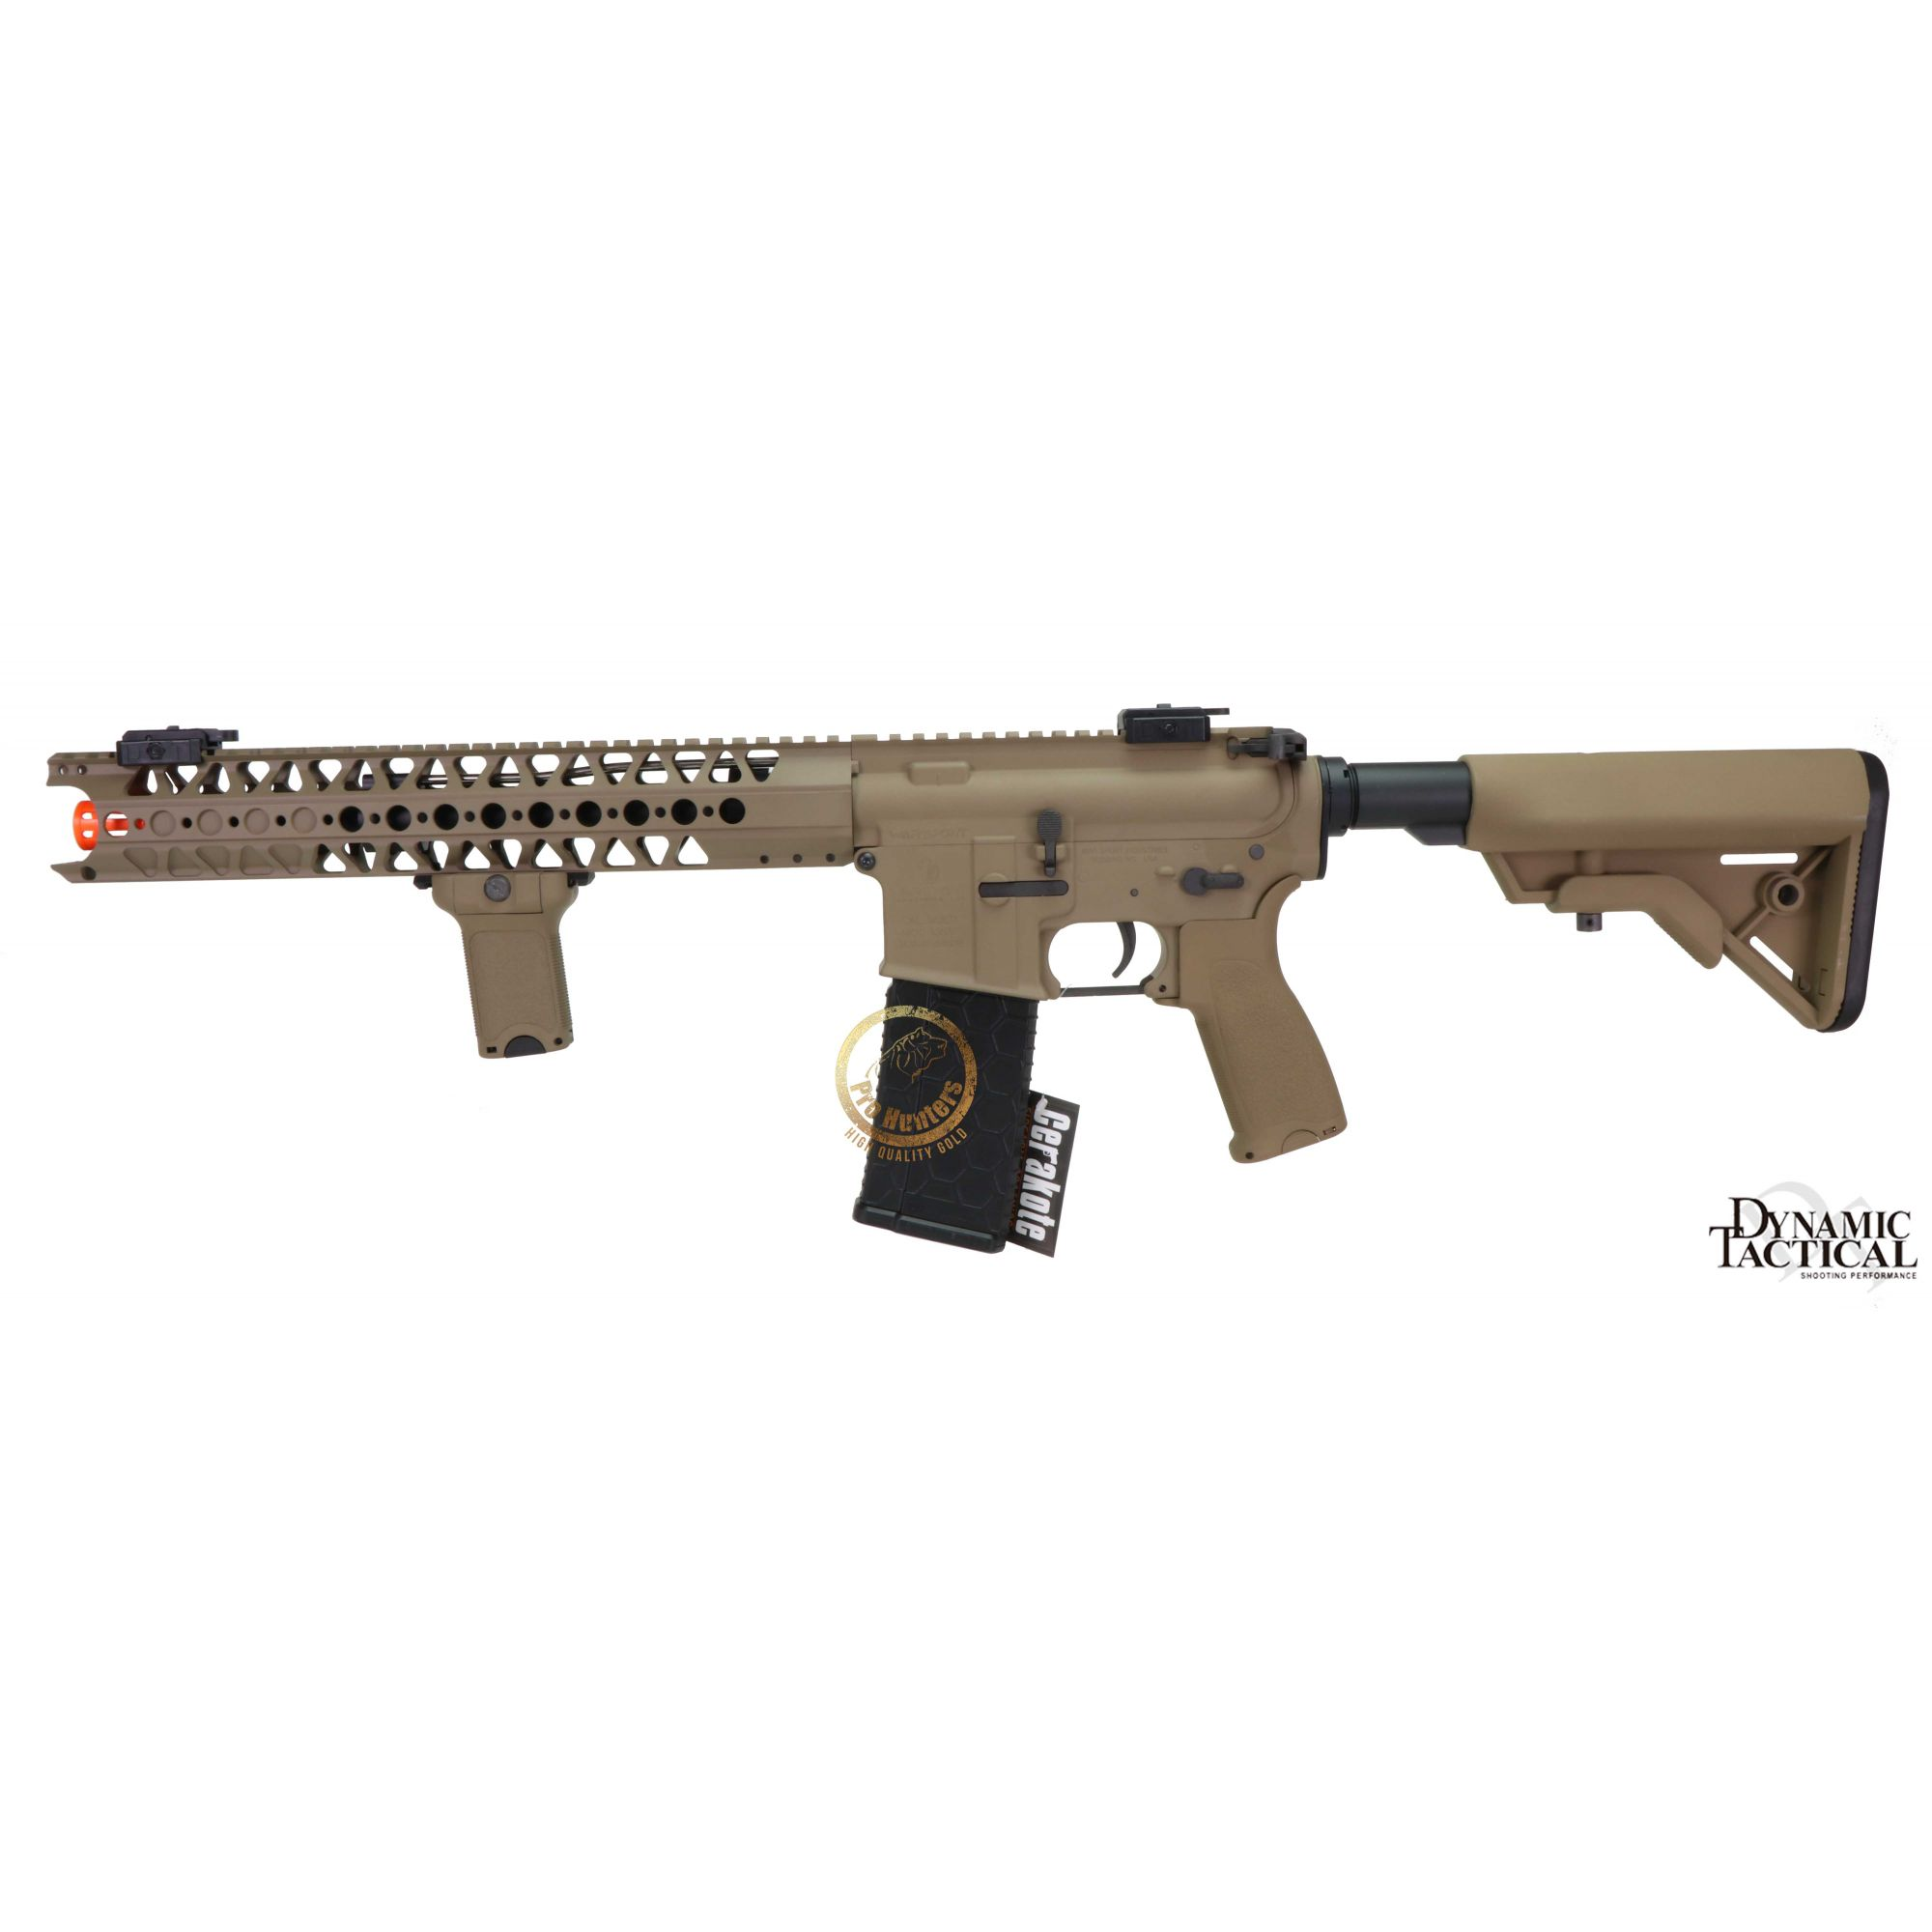 Rifle Airsoft Dytac LA M4 SBR - Dark Earth